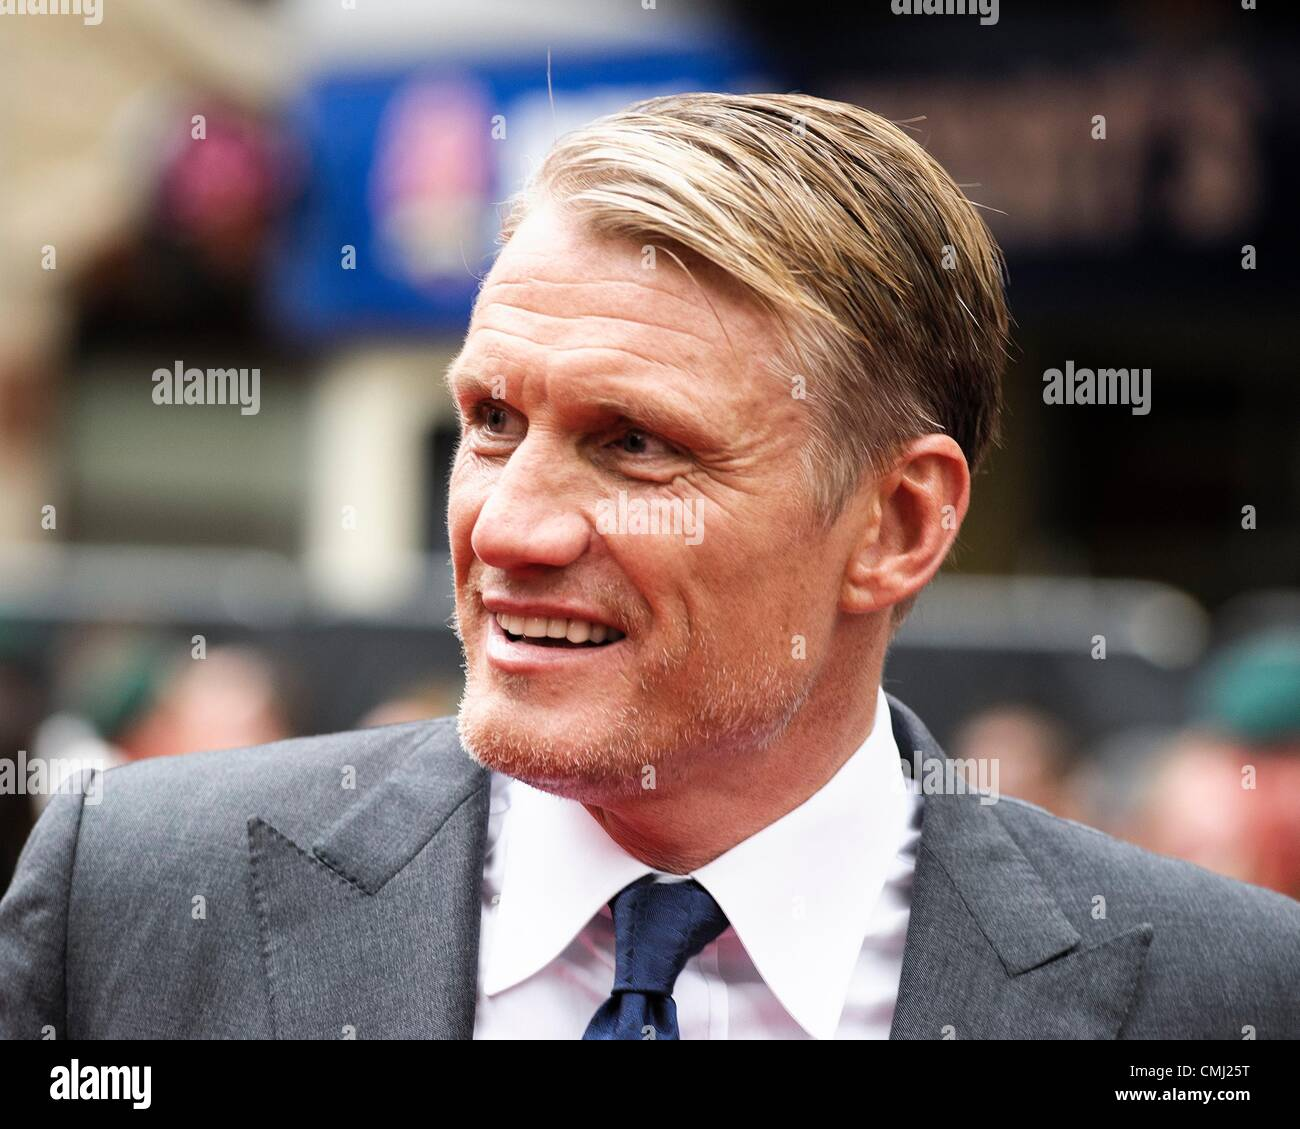 13th Aug 2012. Dolph Lundgren attends UK Premiere of the film Expendables 2 on 13/08/2012 at The Empire Leicester - Stock Image